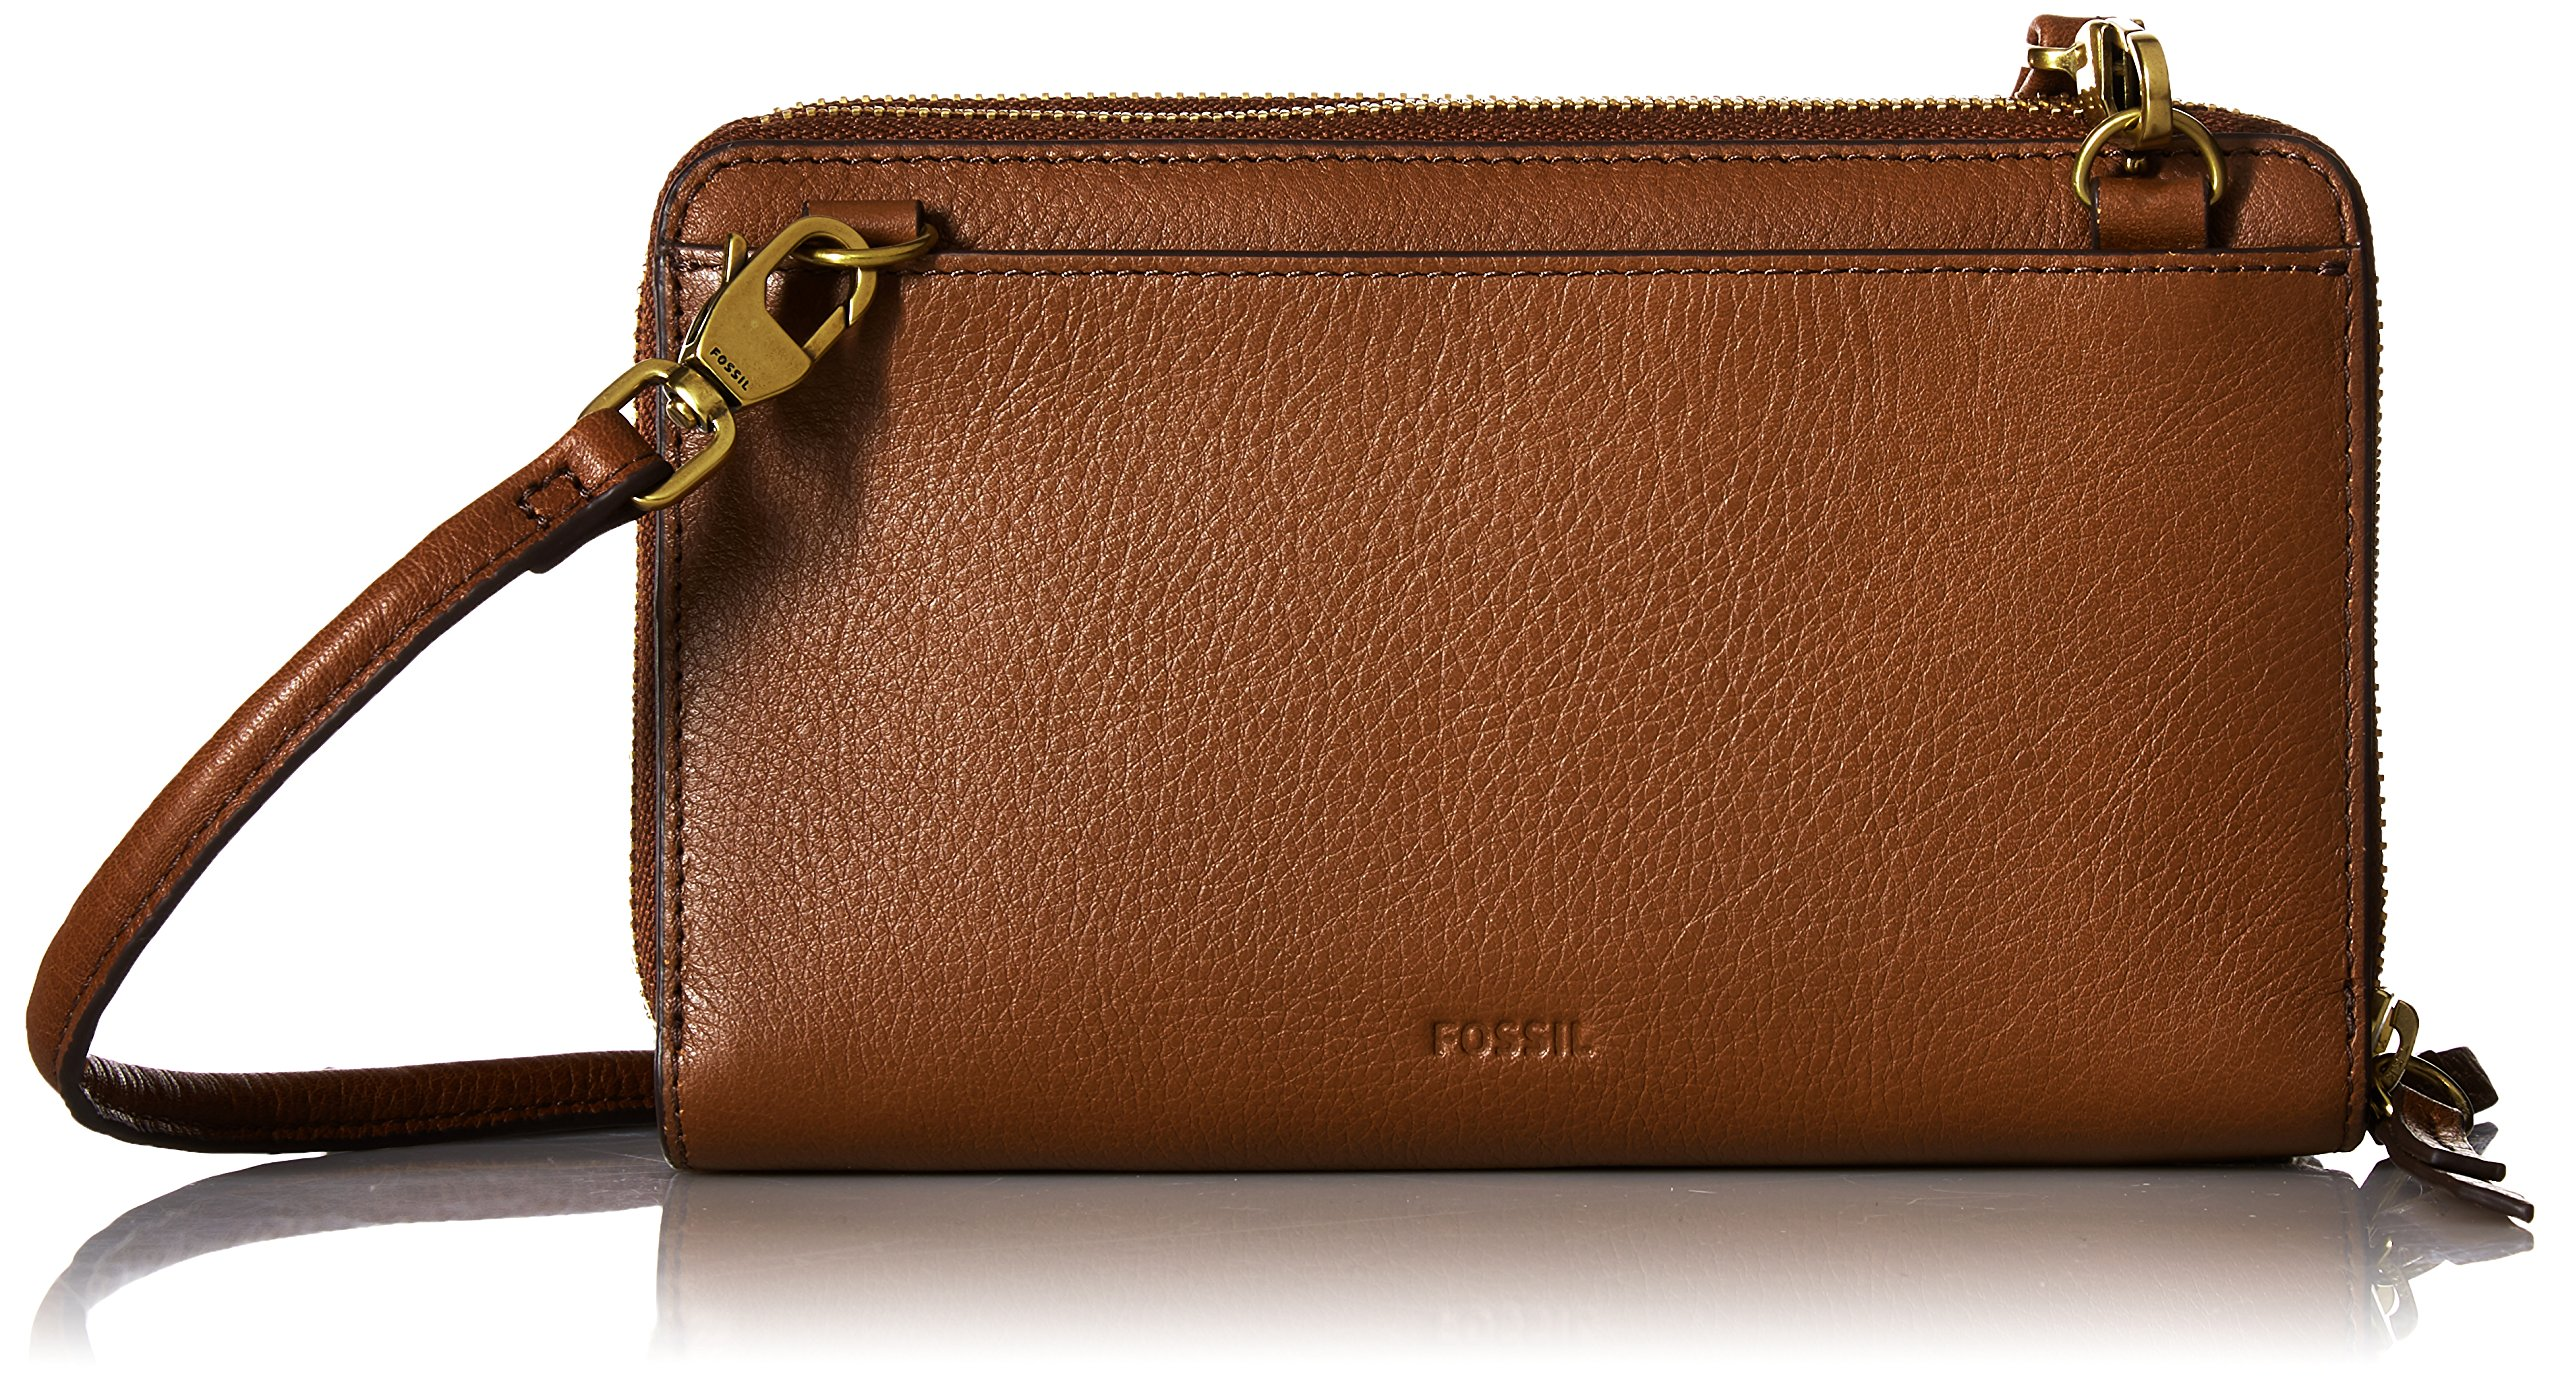 Fossil Raven Wallet Crossbody, Brown